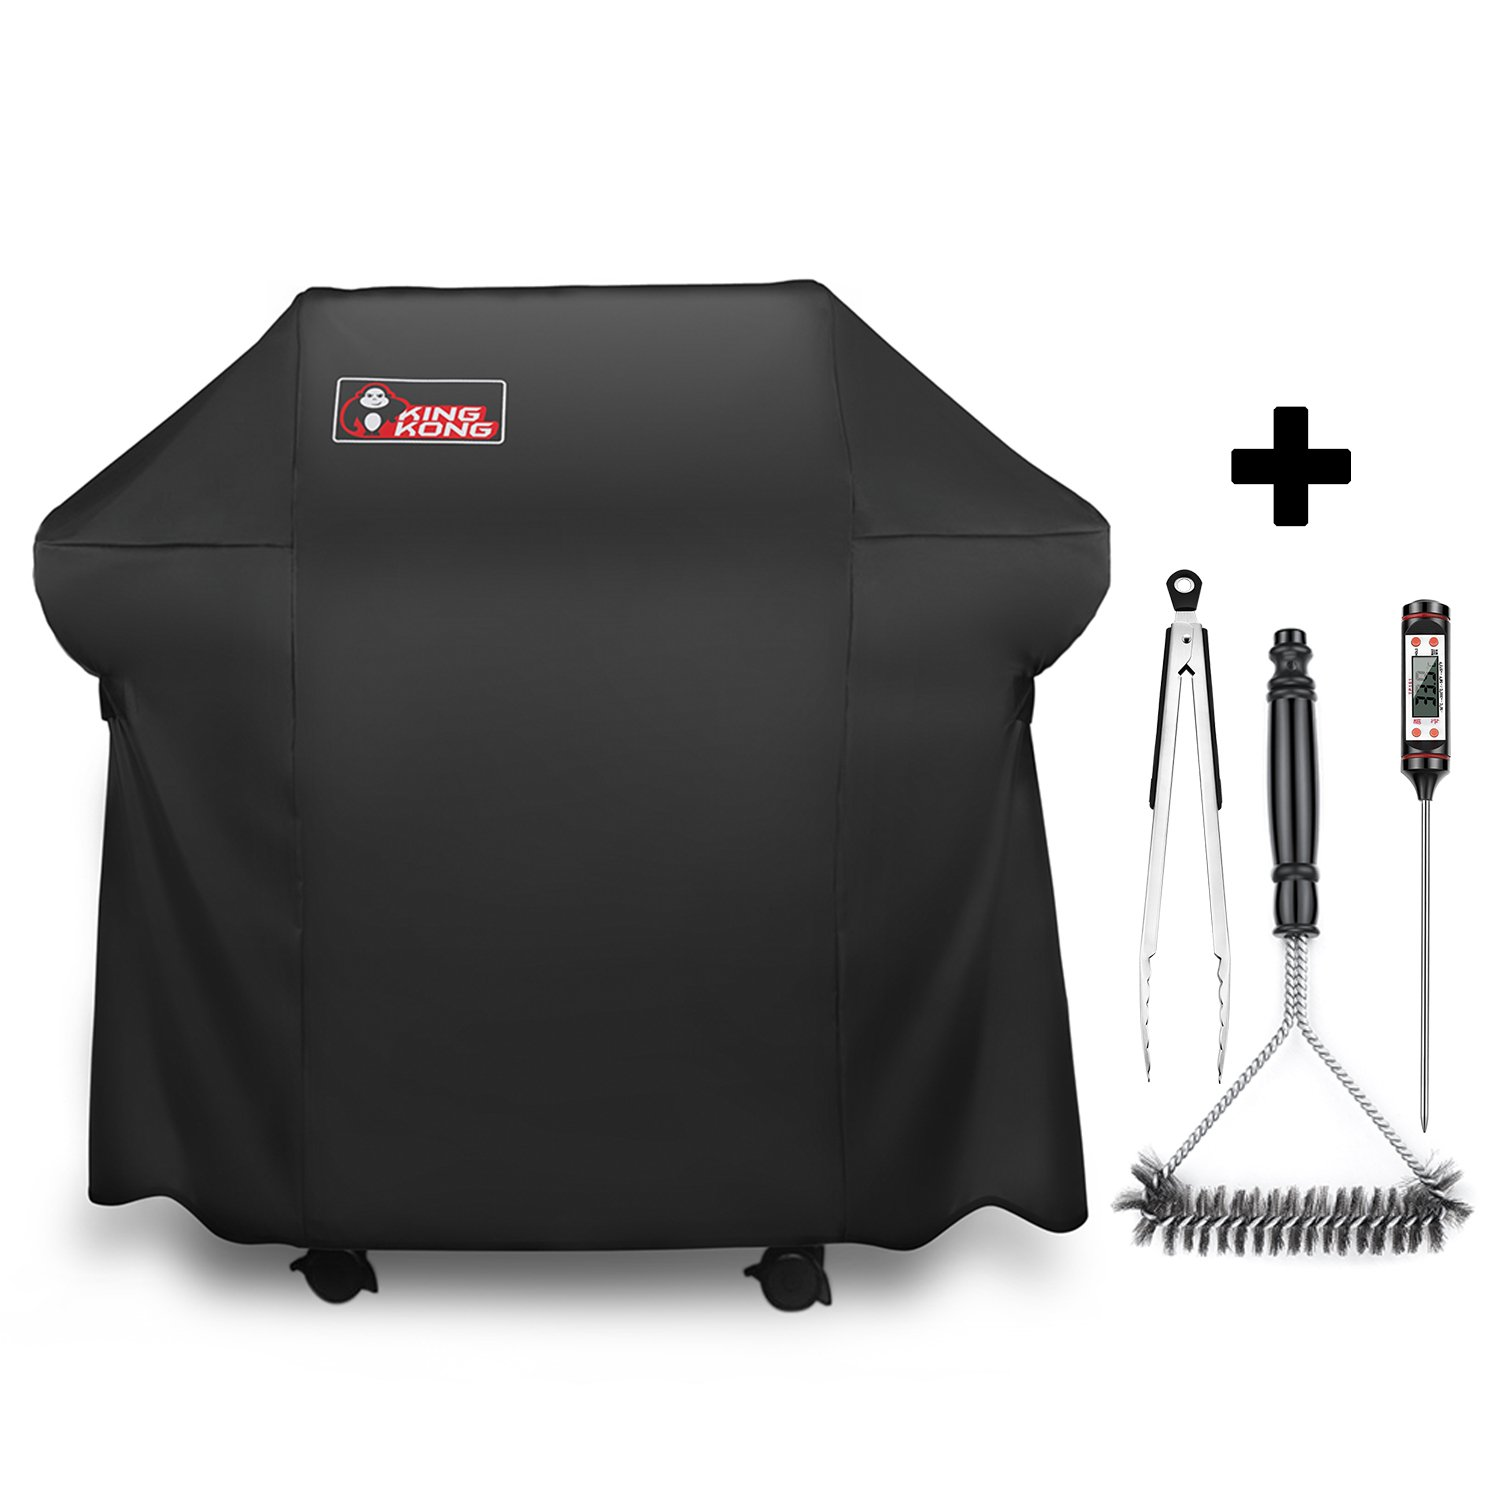 Kingkong Grill Cover 7106  Cover for Weber Spirit 200 and 300 Series Gas Grill Including Grill Brush,Tongs and Thermometer by King Kong